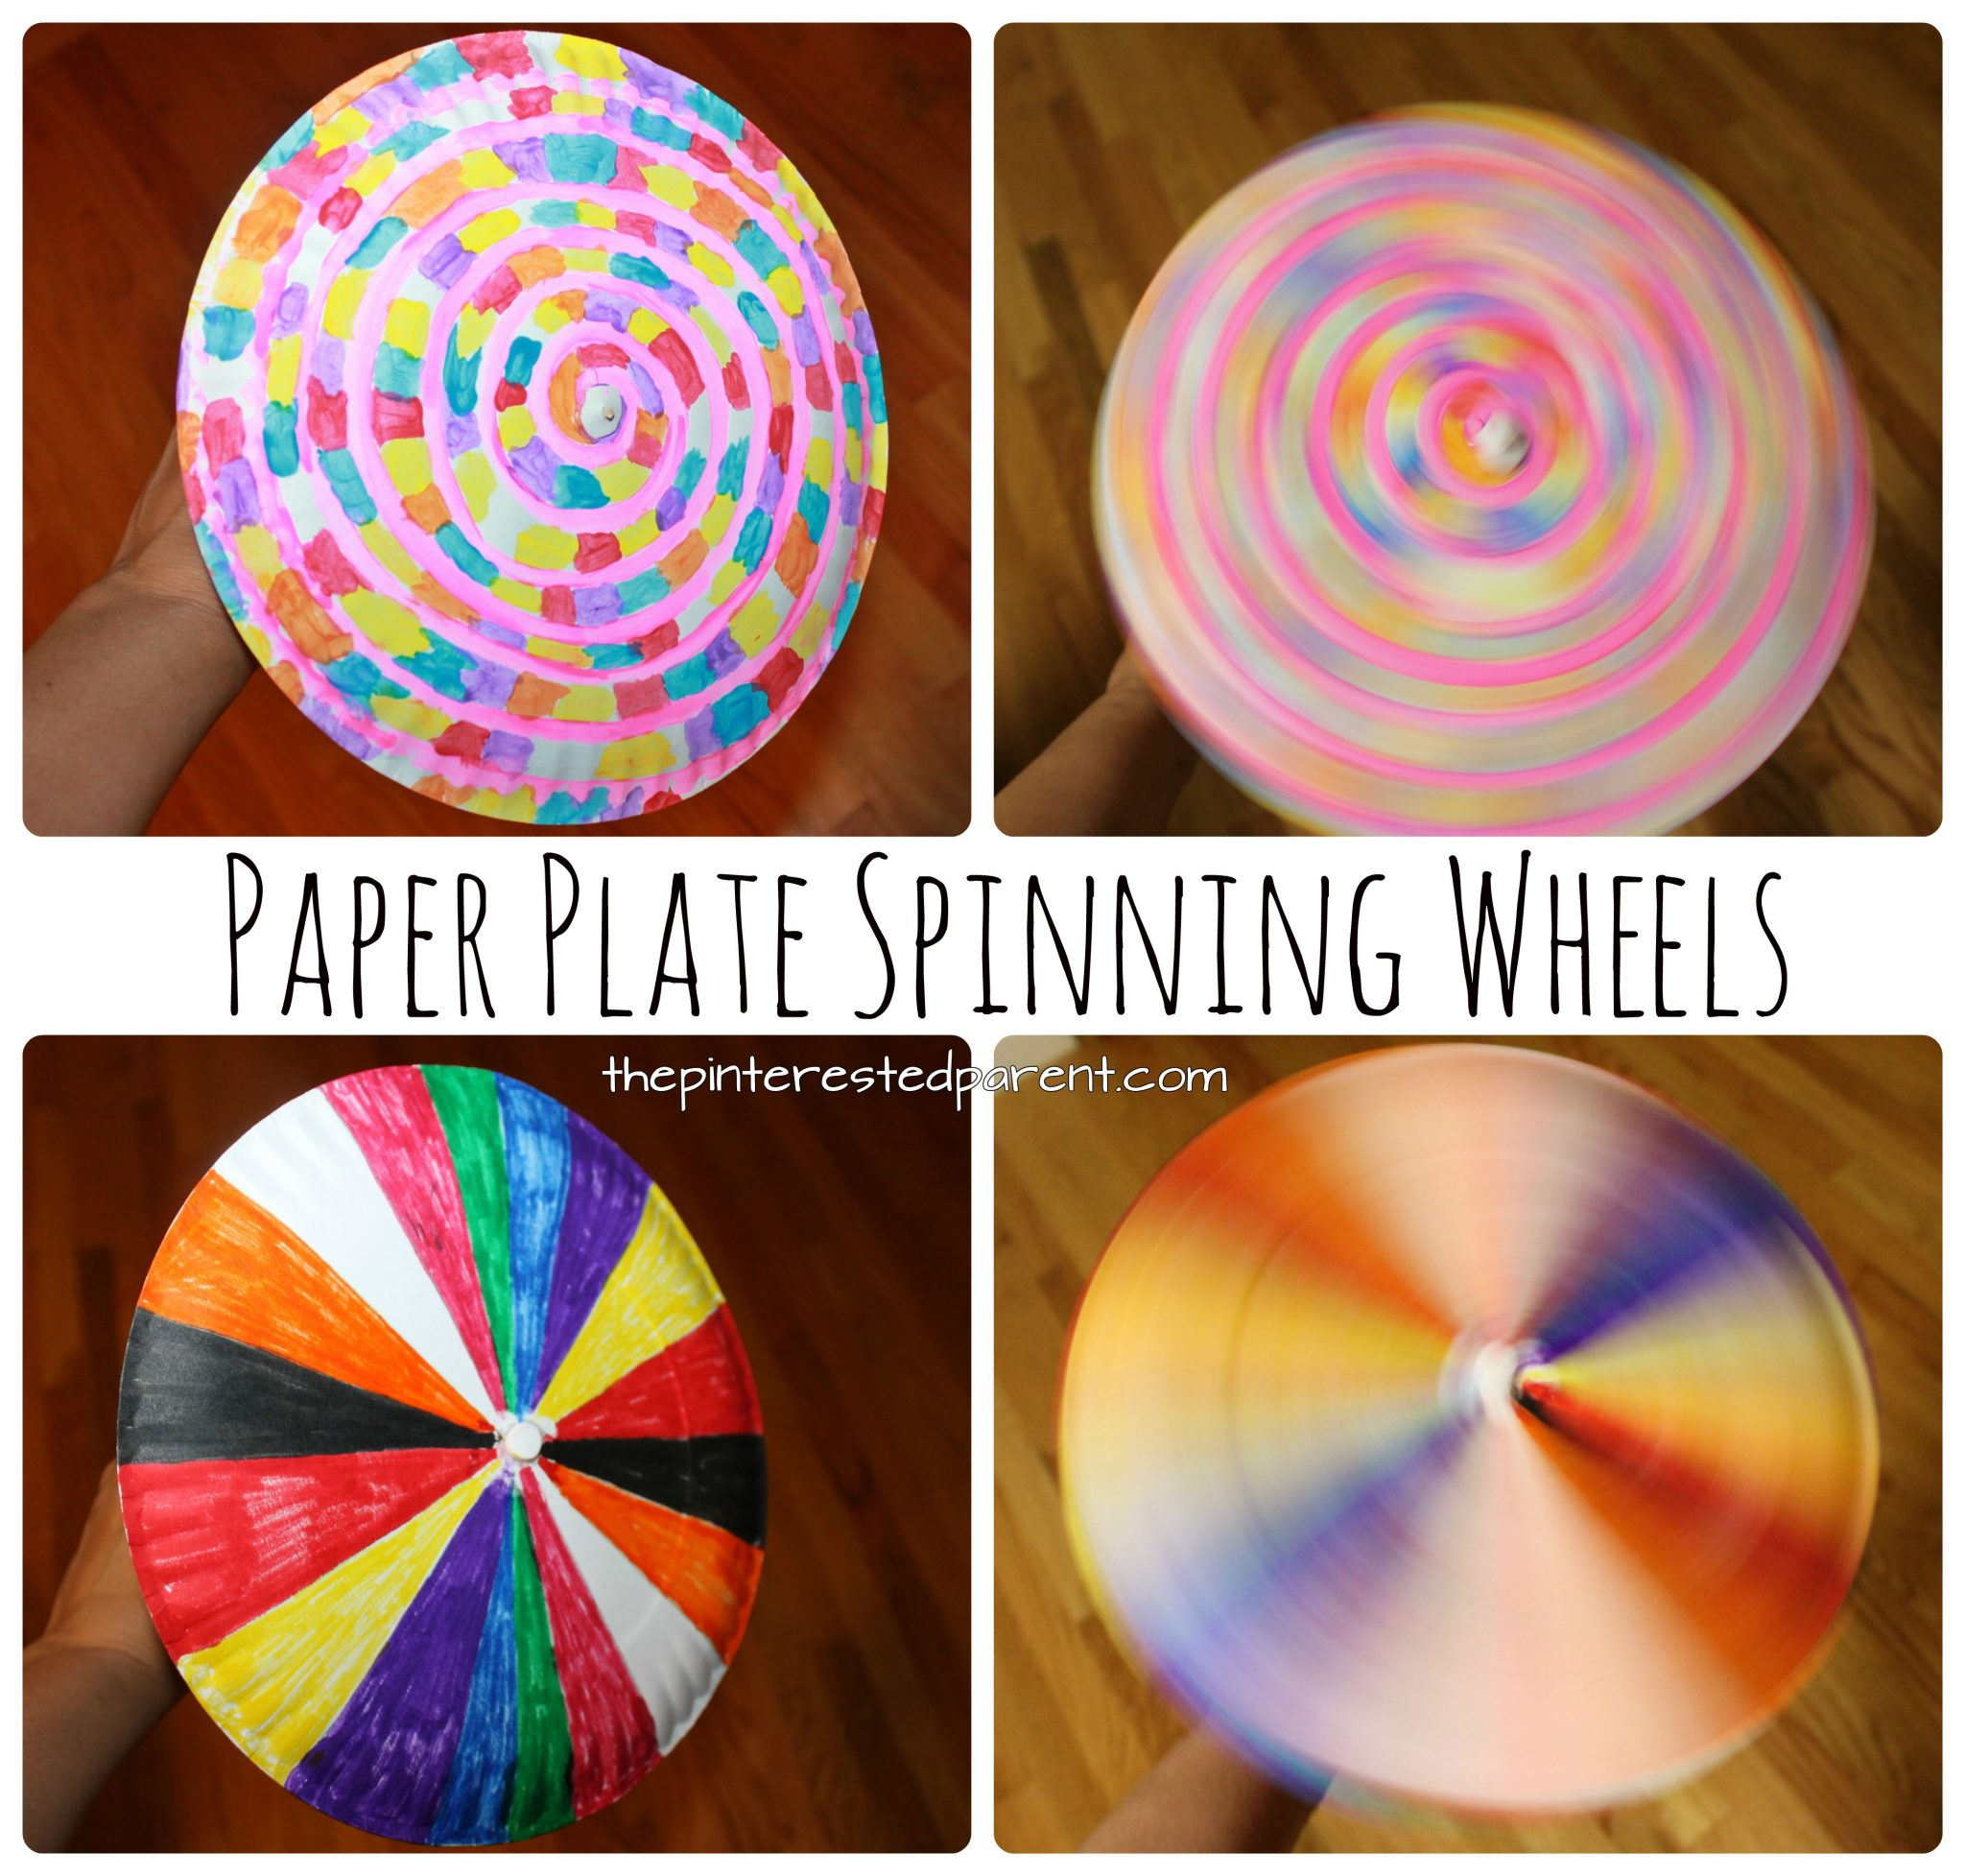 Paper Plate Spinning Wheel The Pinterested Parent